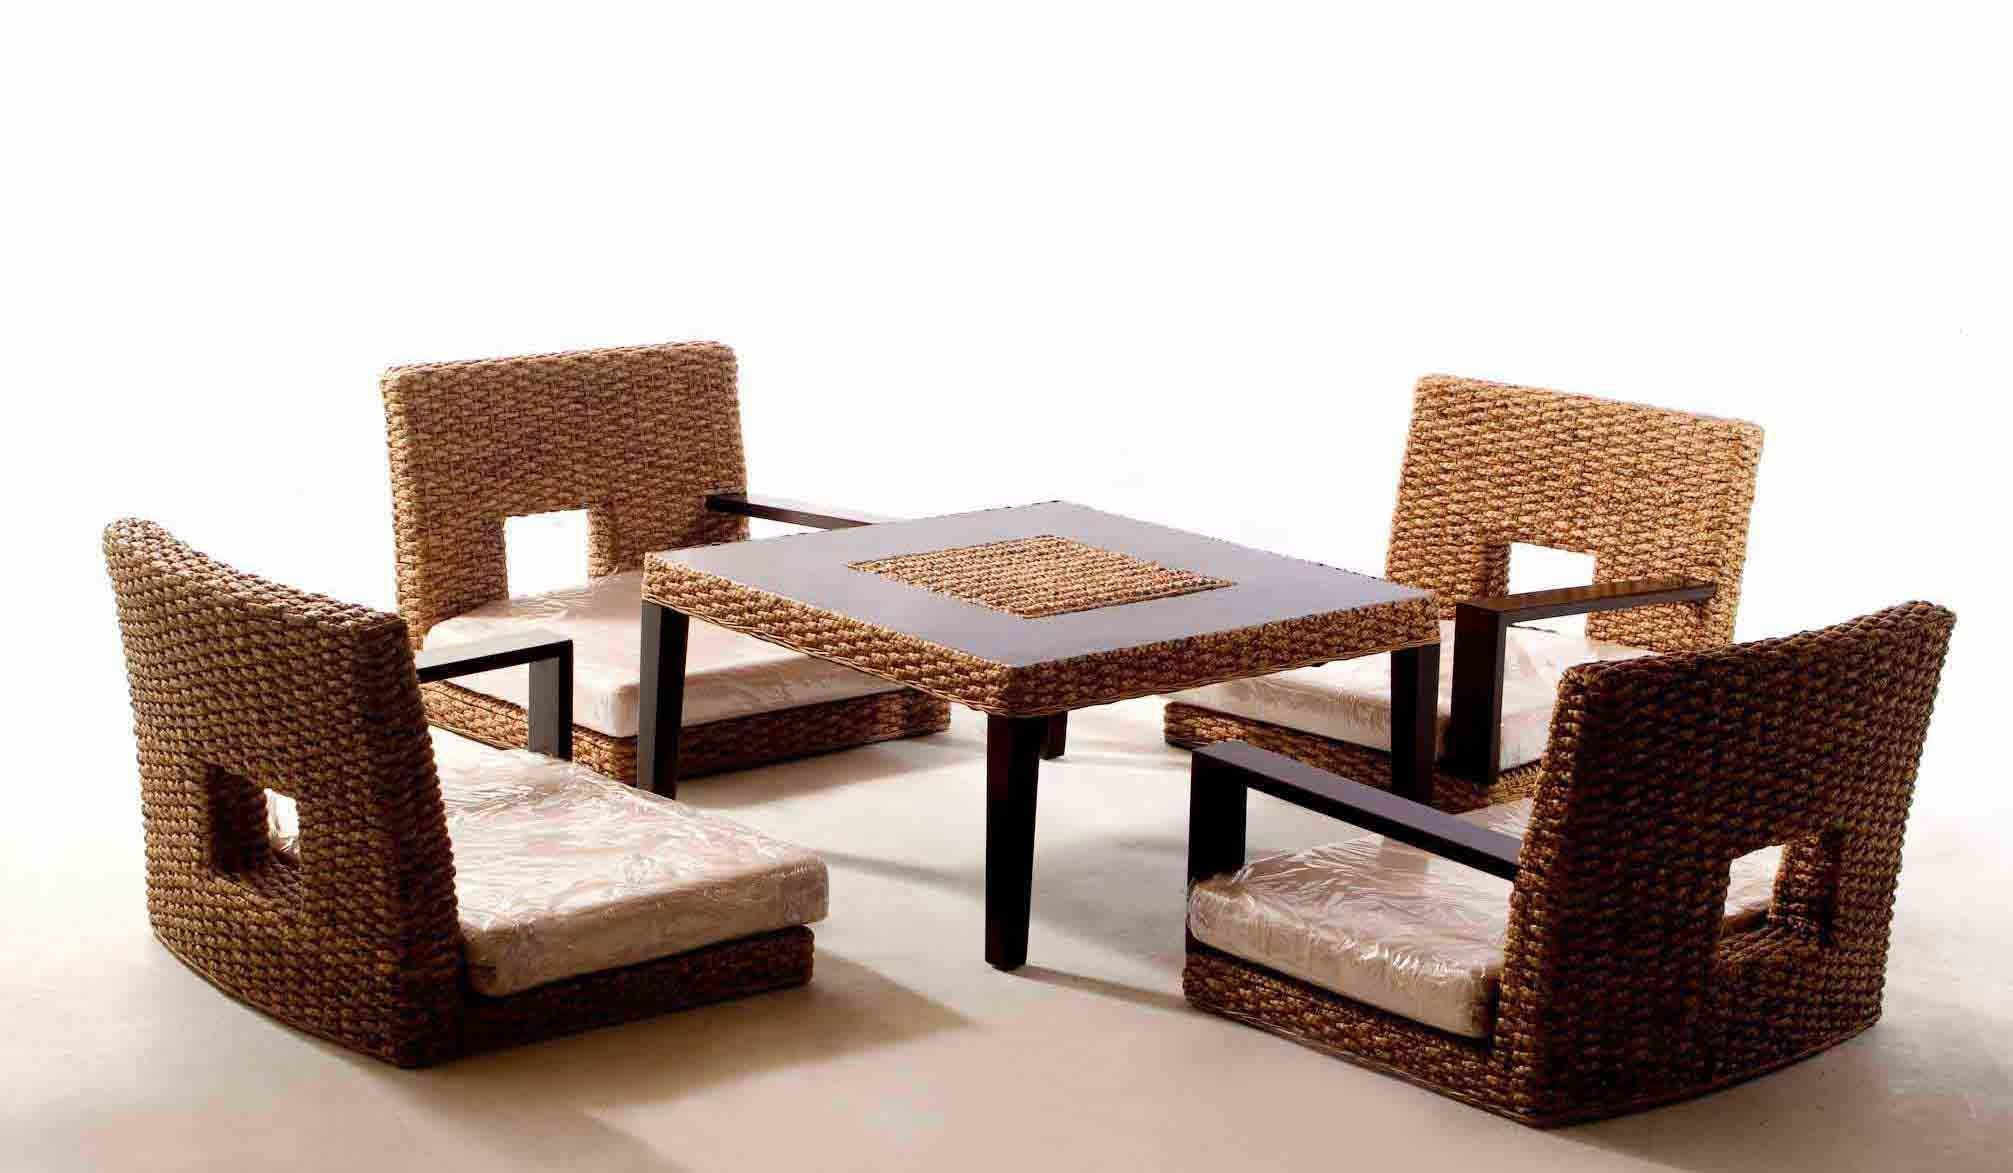 japanese dining room furniture. Water Hyacinth Japanese Dining Room Furniture Sets I